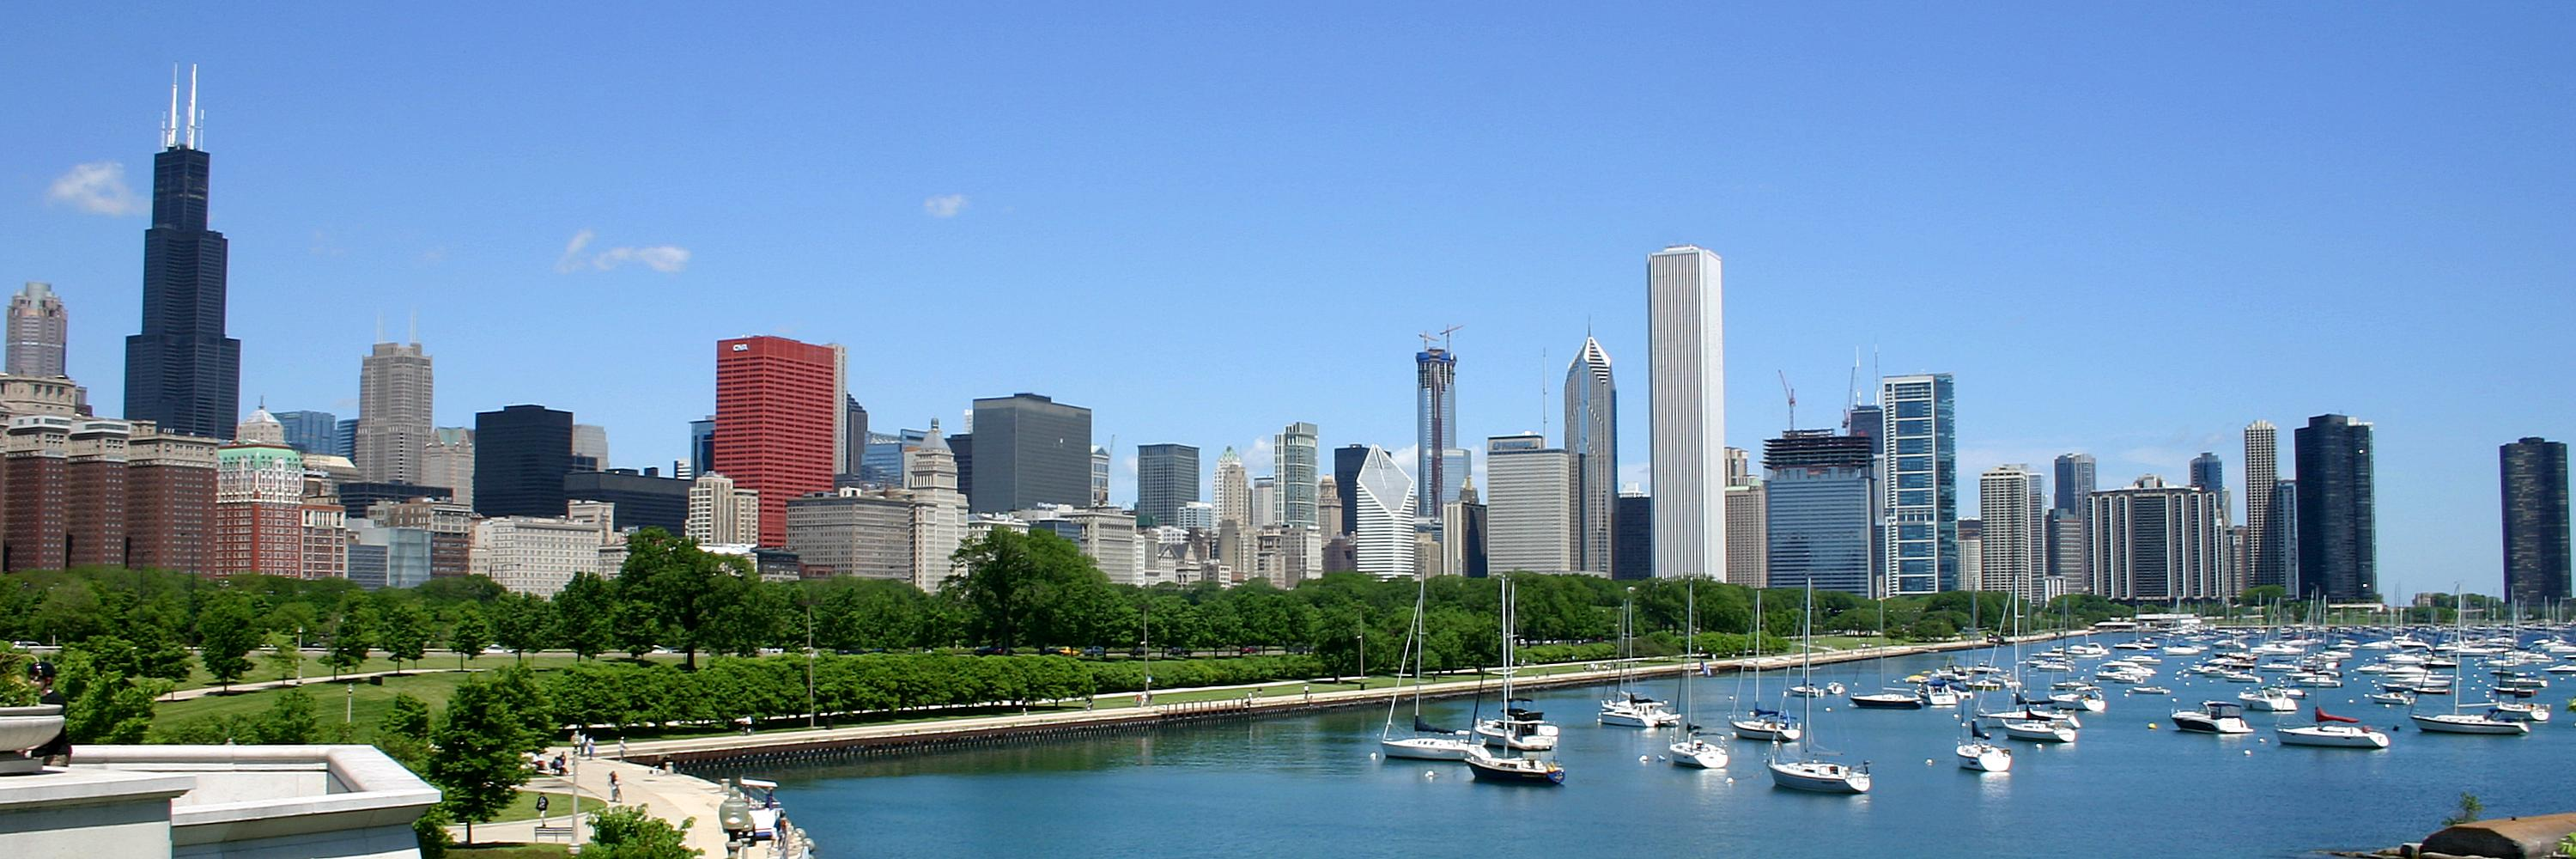 Credit Rating Agencies Downgrade Chicago's Debt, Again